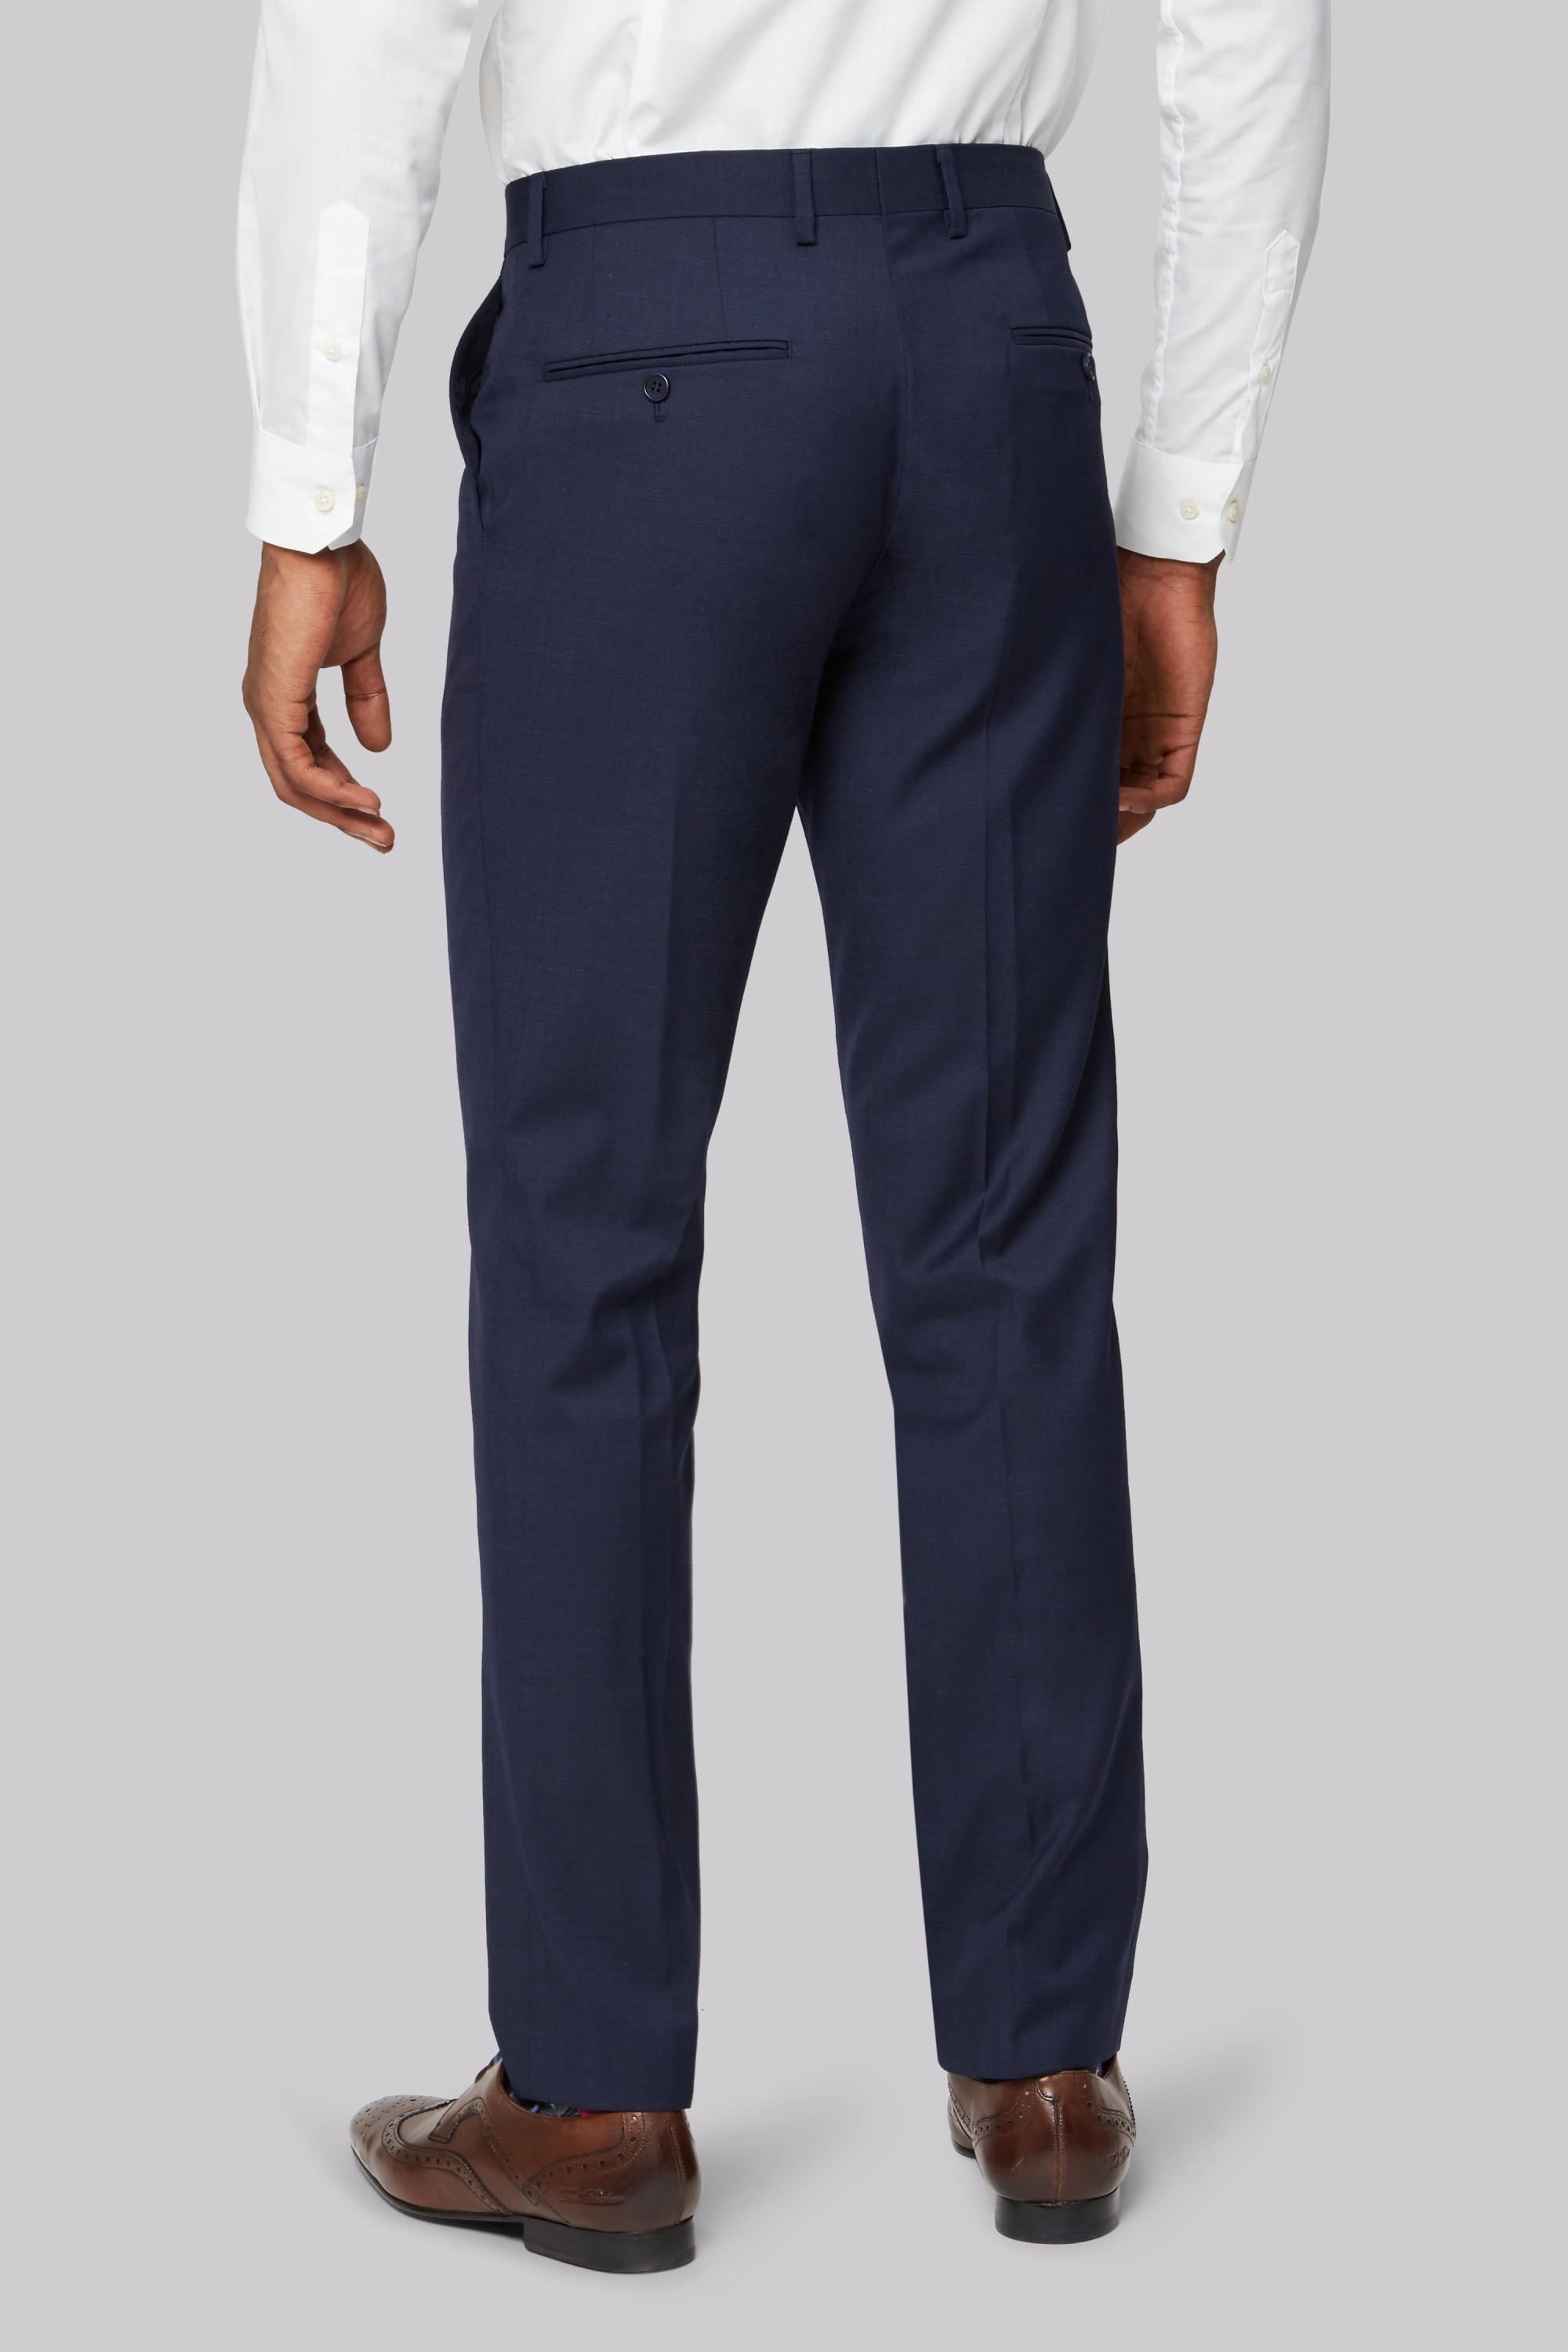 If you're looking for tailor made trousers that will hug your legs while at the same time giving you enough room to move freely and sit comfortably, then you've come to the right place. At iTailor, the world's foremost tailoring factory, you can be the designer of your own trousers.